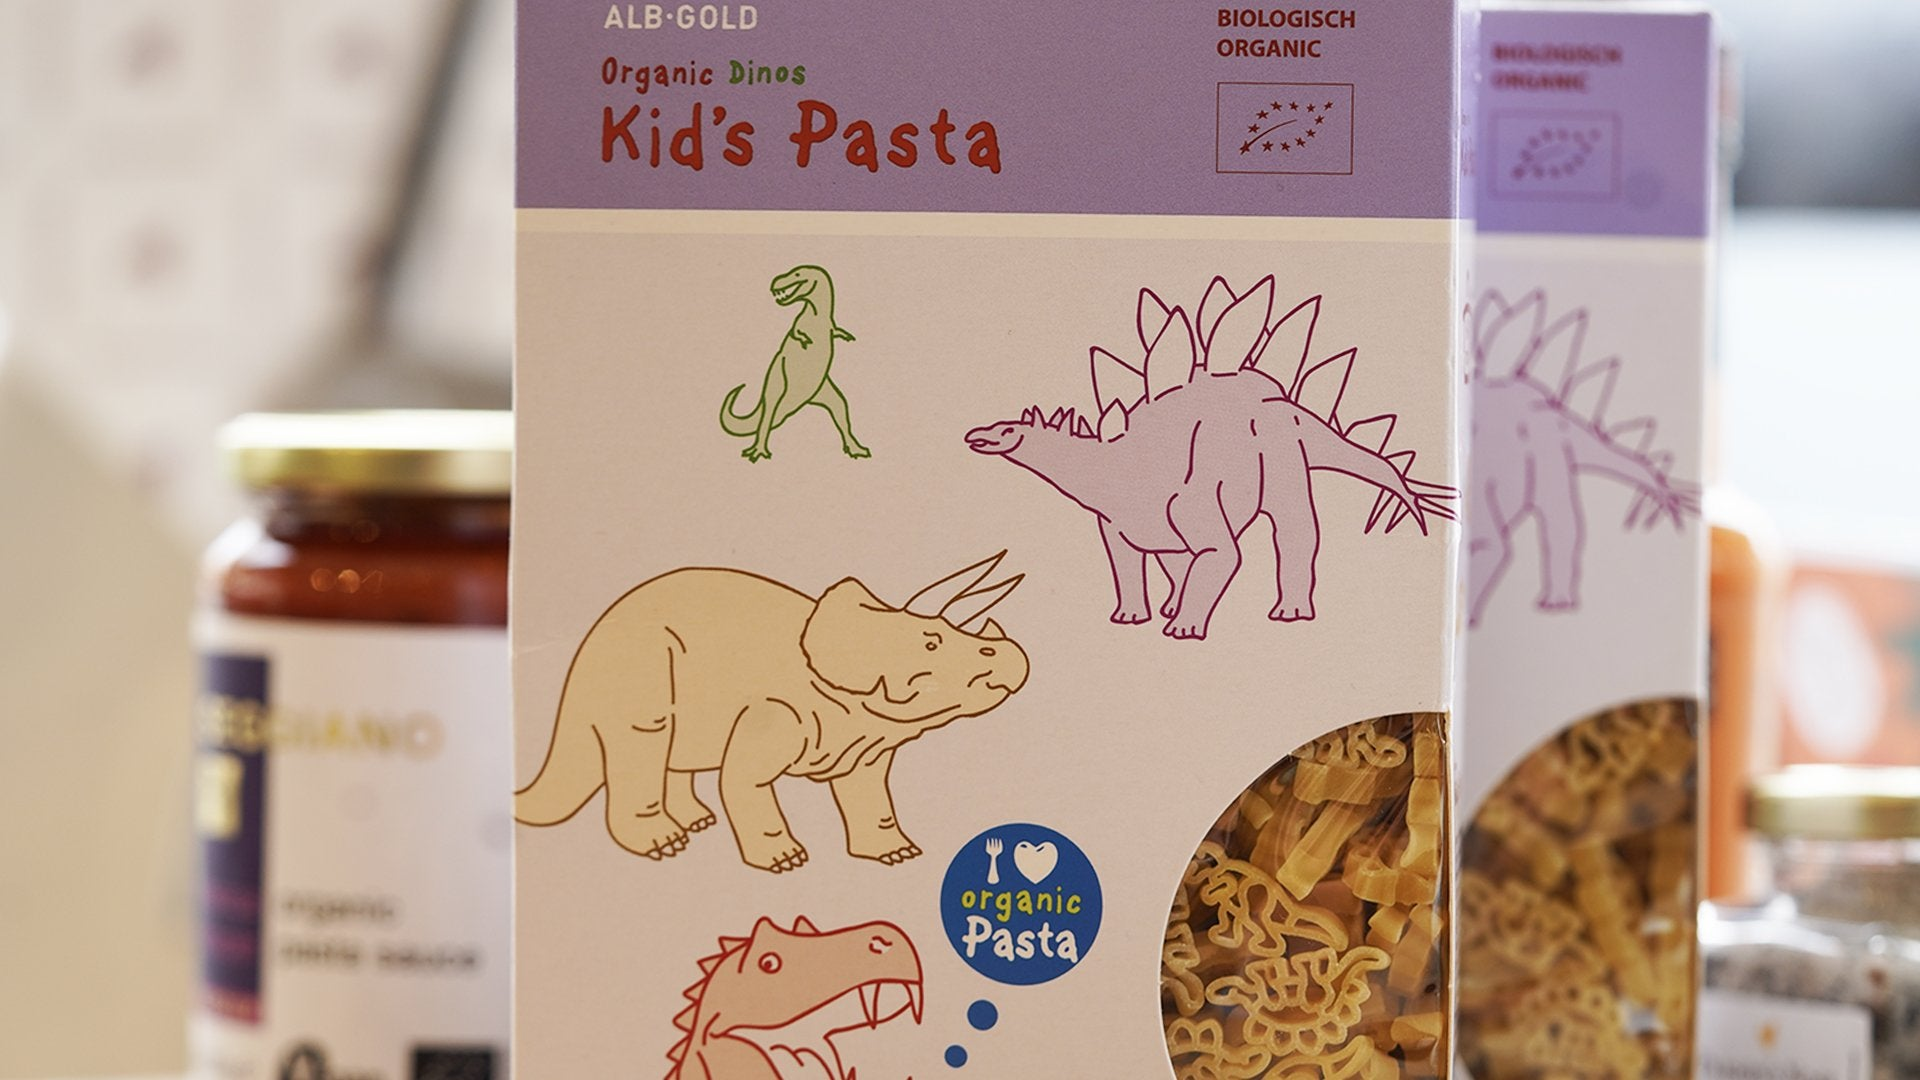 Kids Pasta (Box) for sale - Parsons Nose